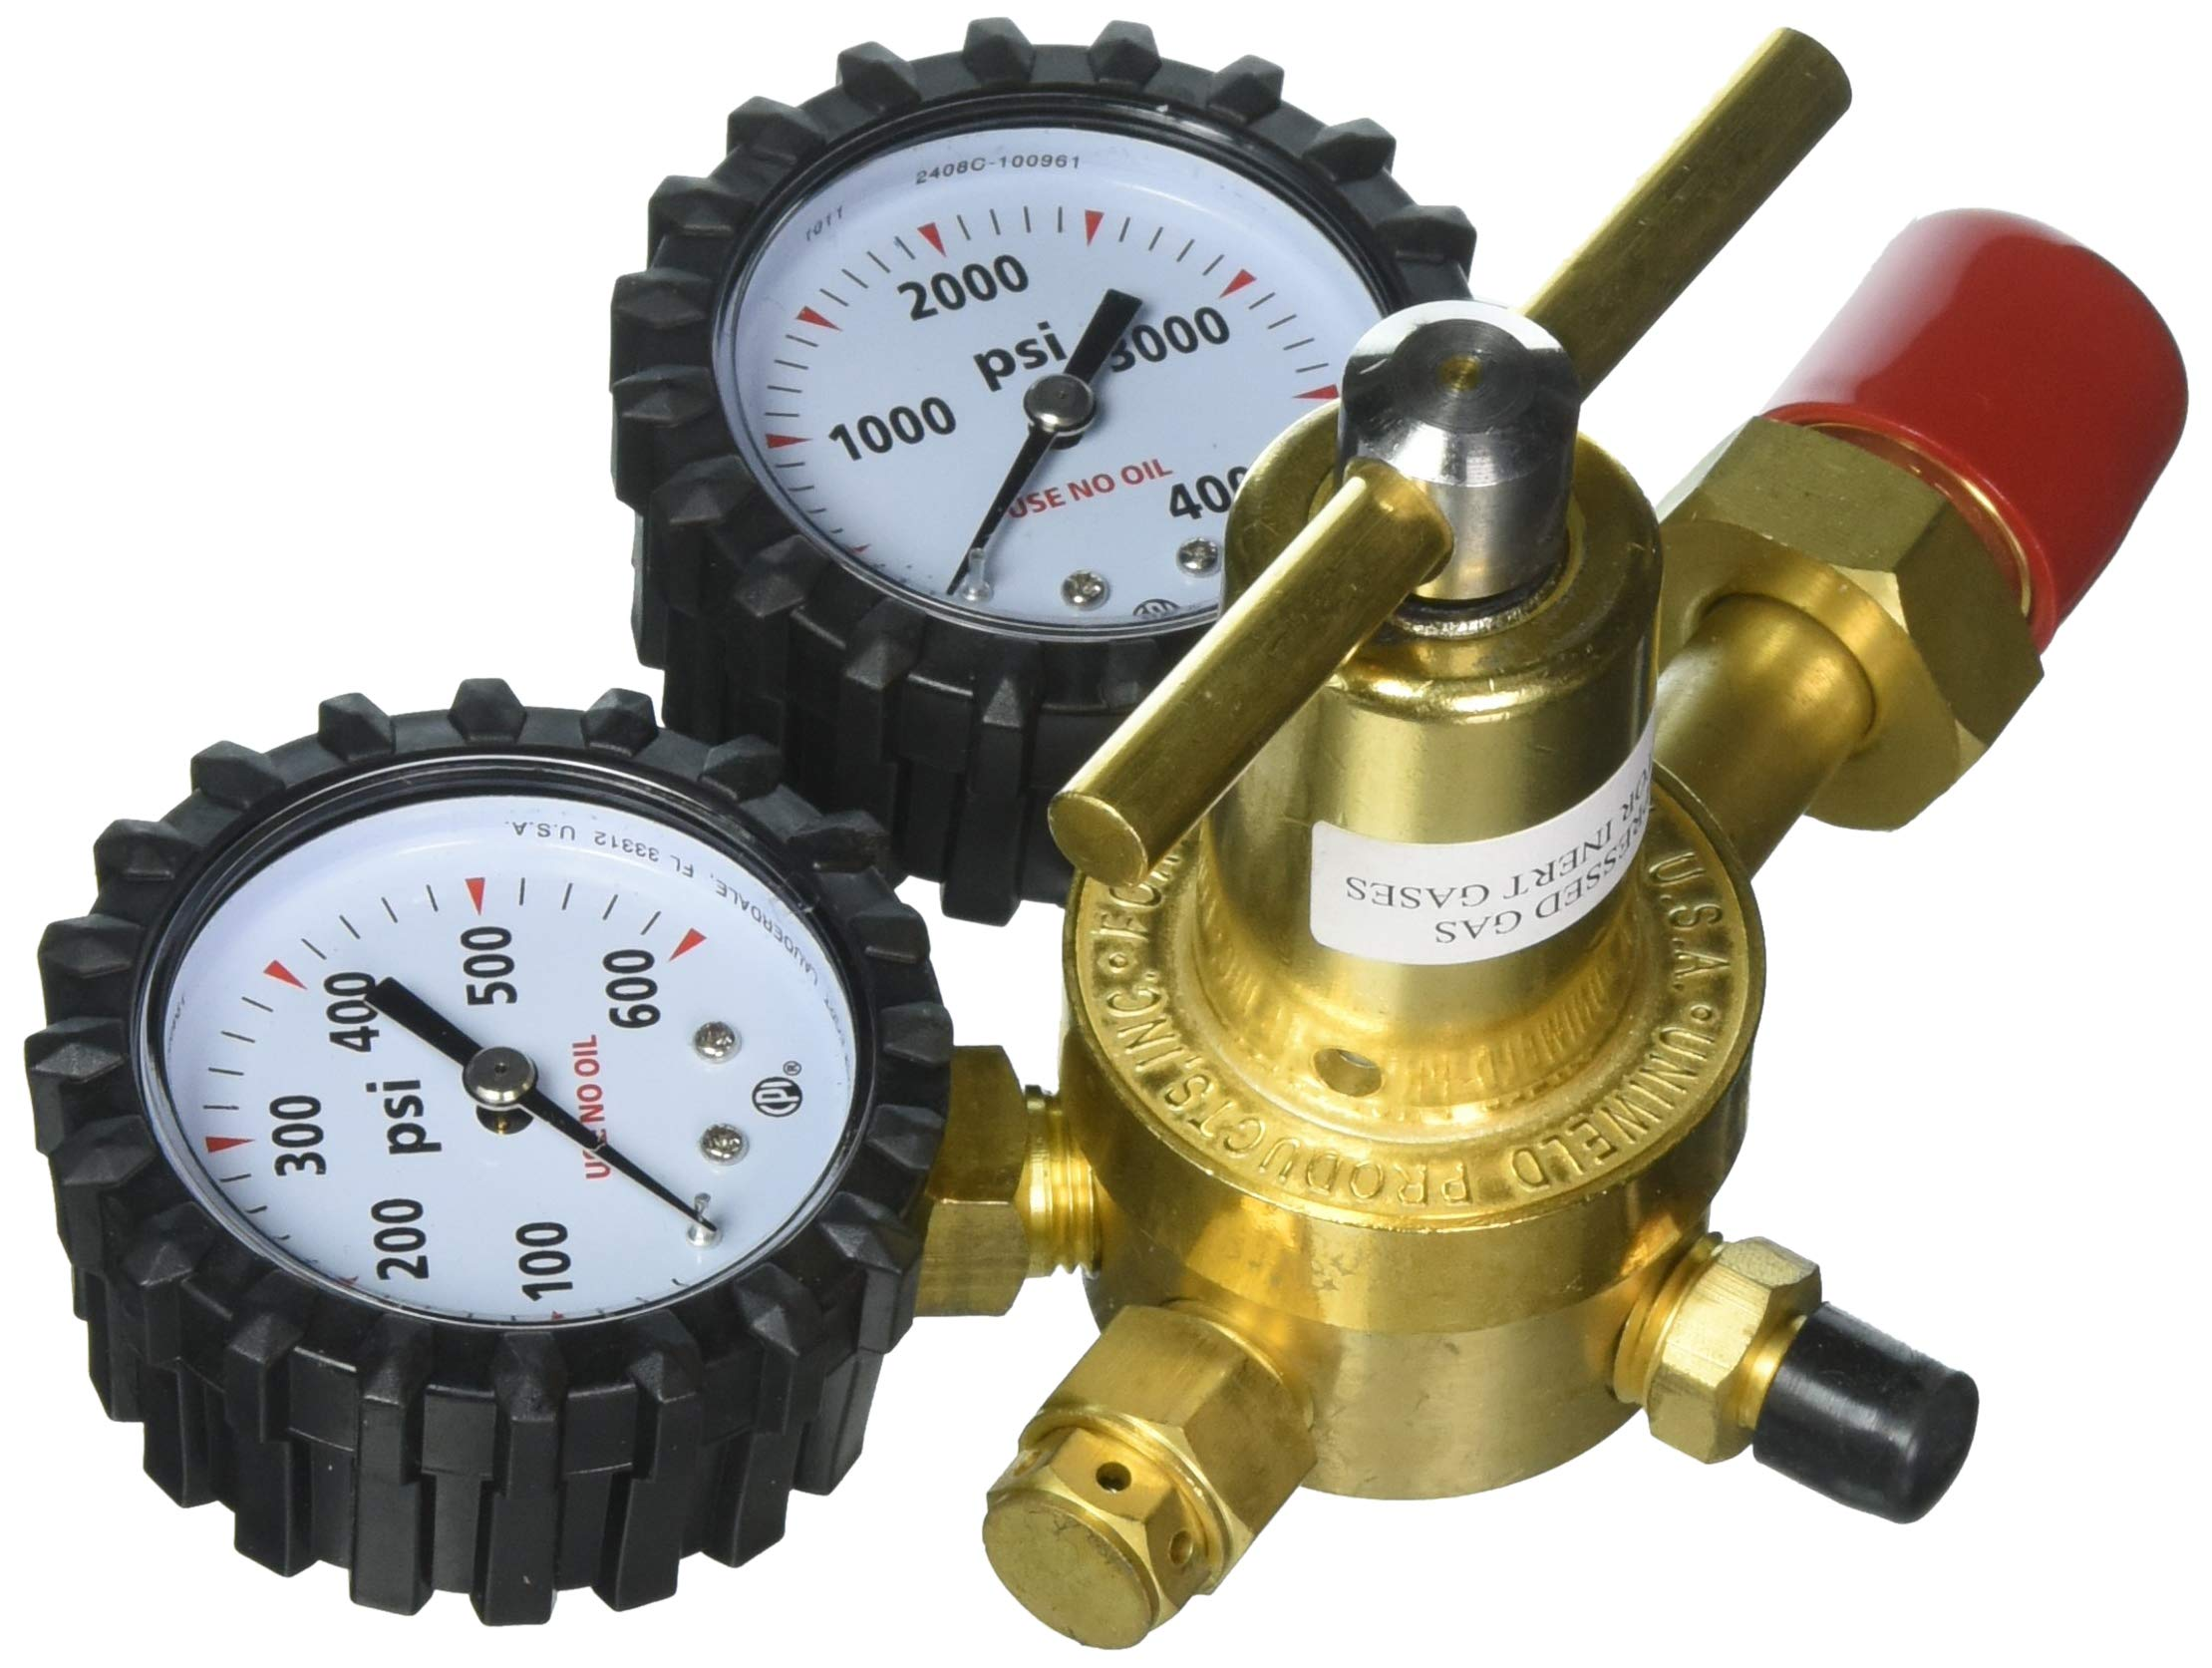 Pack Uniweld RHP400 Nitrogen Regulator with 0-400 PSI Delivery Pressure CGA580 Inlet Connection and 1//4-Inch Male Flare Outlet Connection 2-